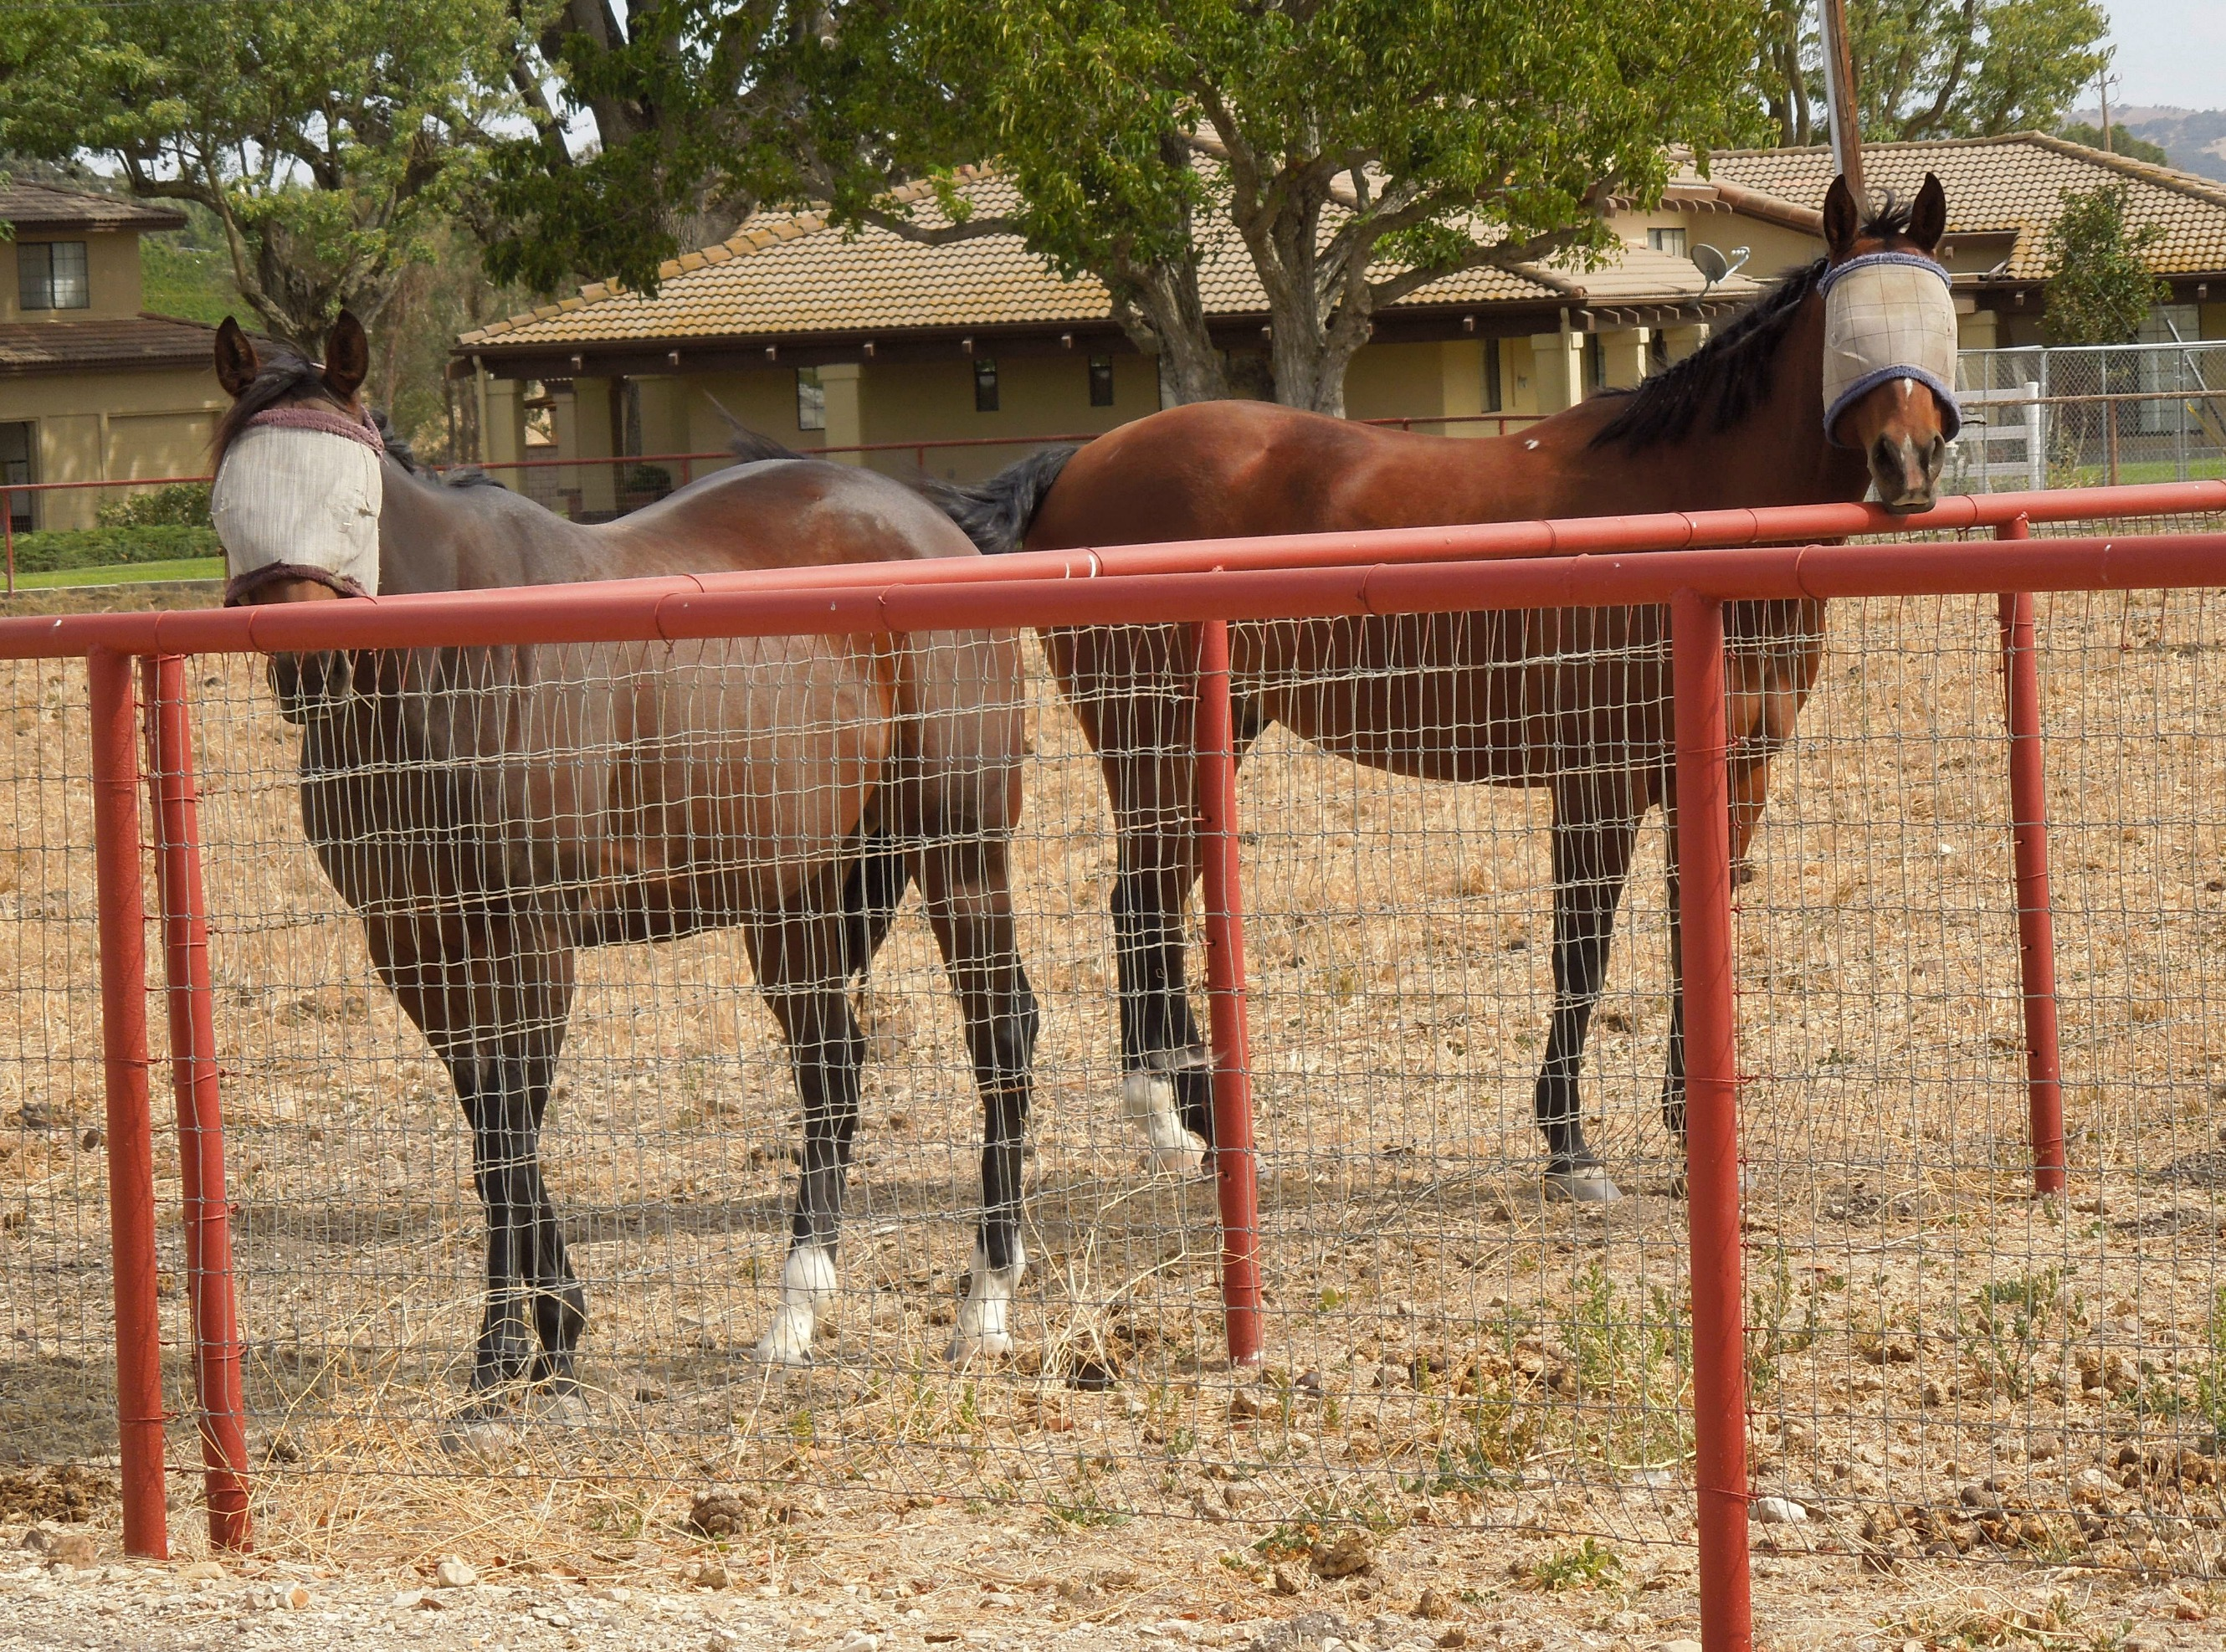 Horses Wearing Blindfolds on a Small Farm in Paso Robles